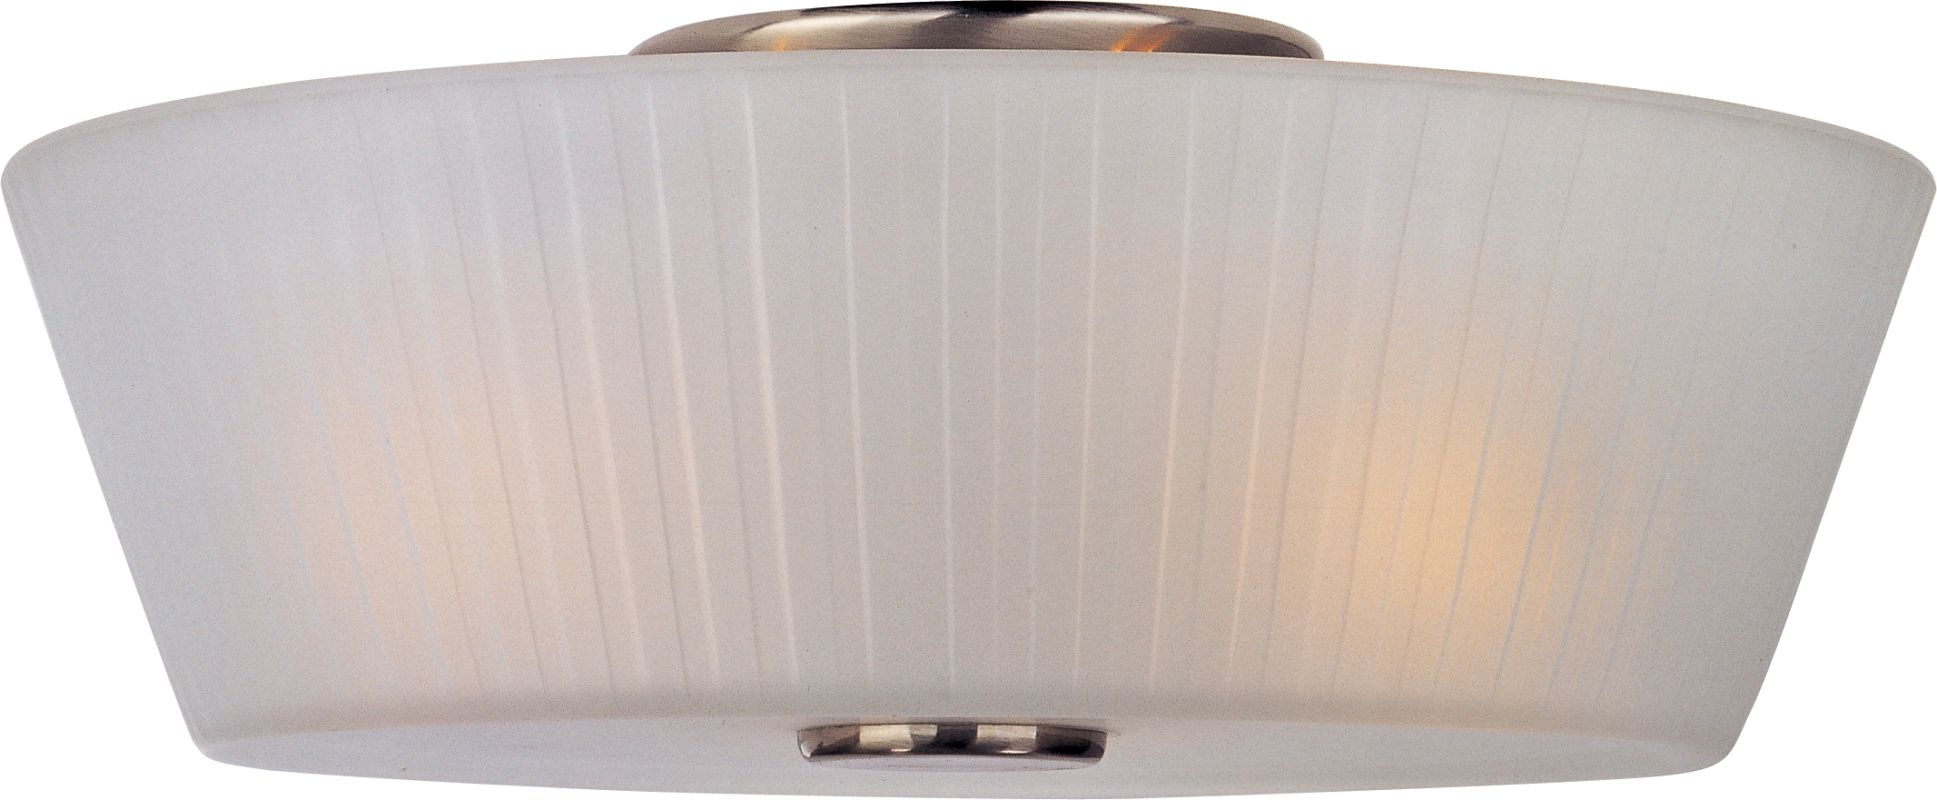 "Maxim 21500 3 Light 13.25"" Wide Flush Mount Ceiling Fixture from the"